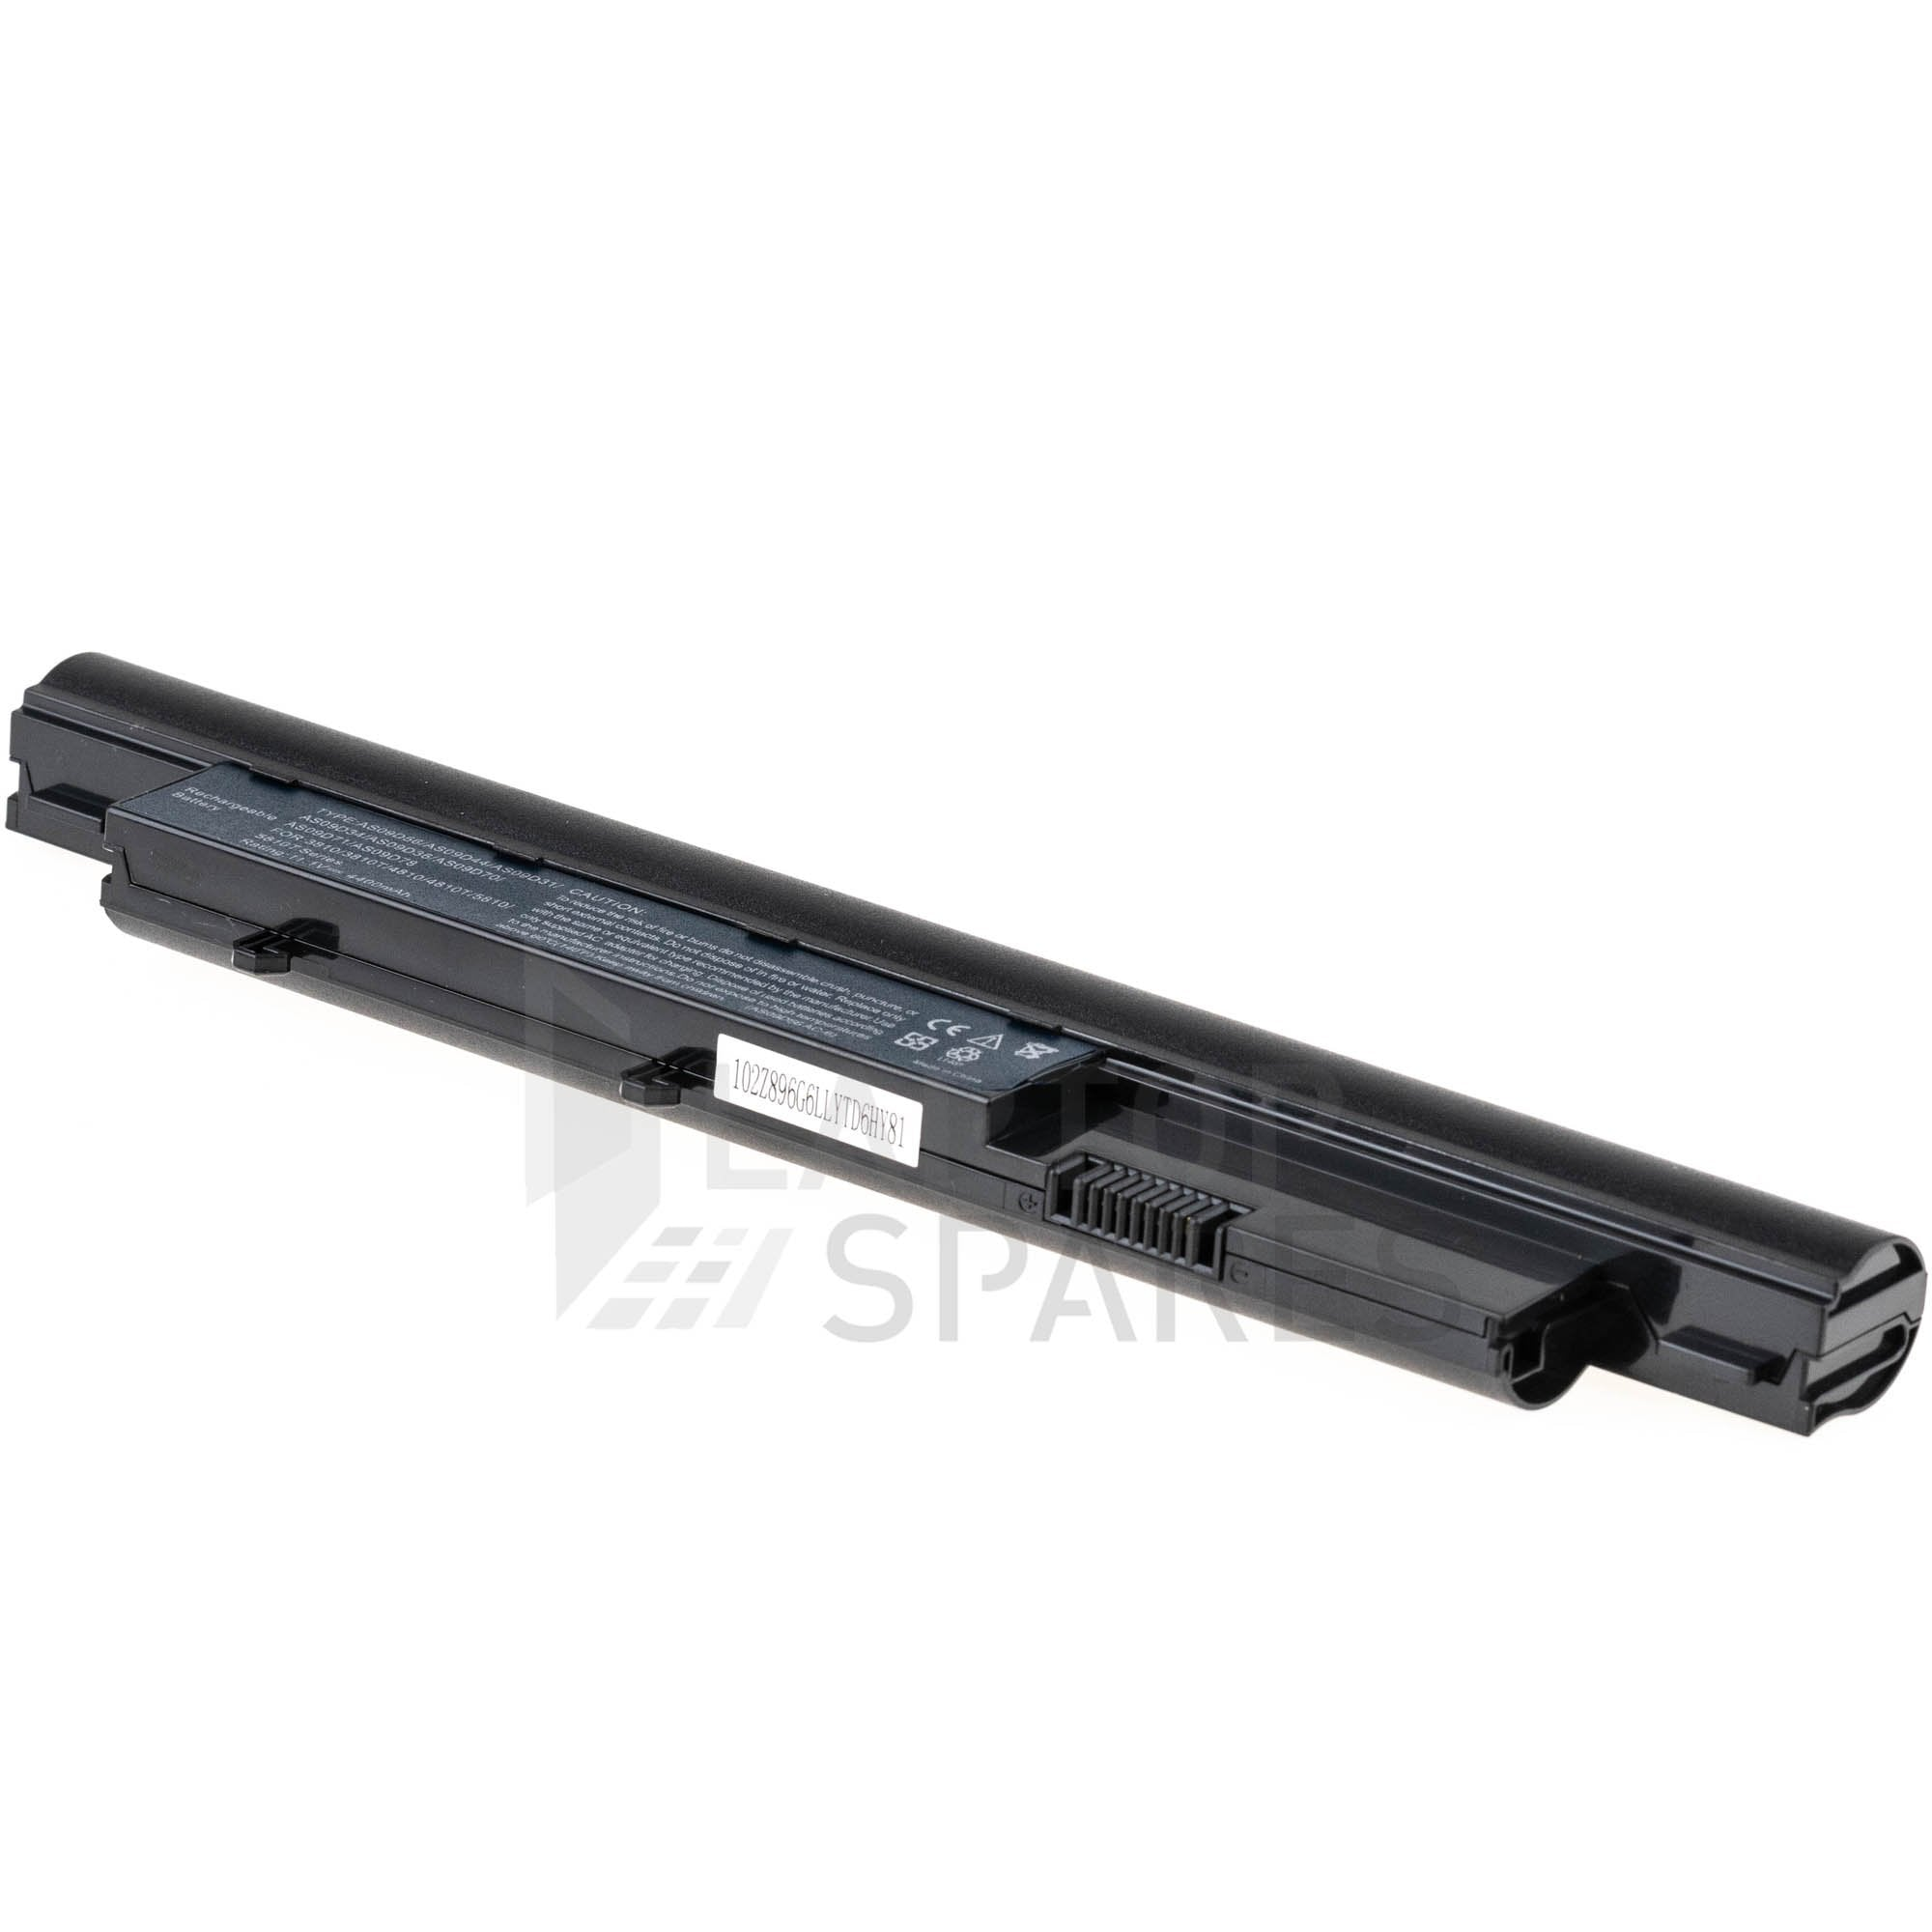 Acer Aspire Timeline 3810TZ 412G25N 413G32MN 4630 4972 4400mAh 6 Cell Battery